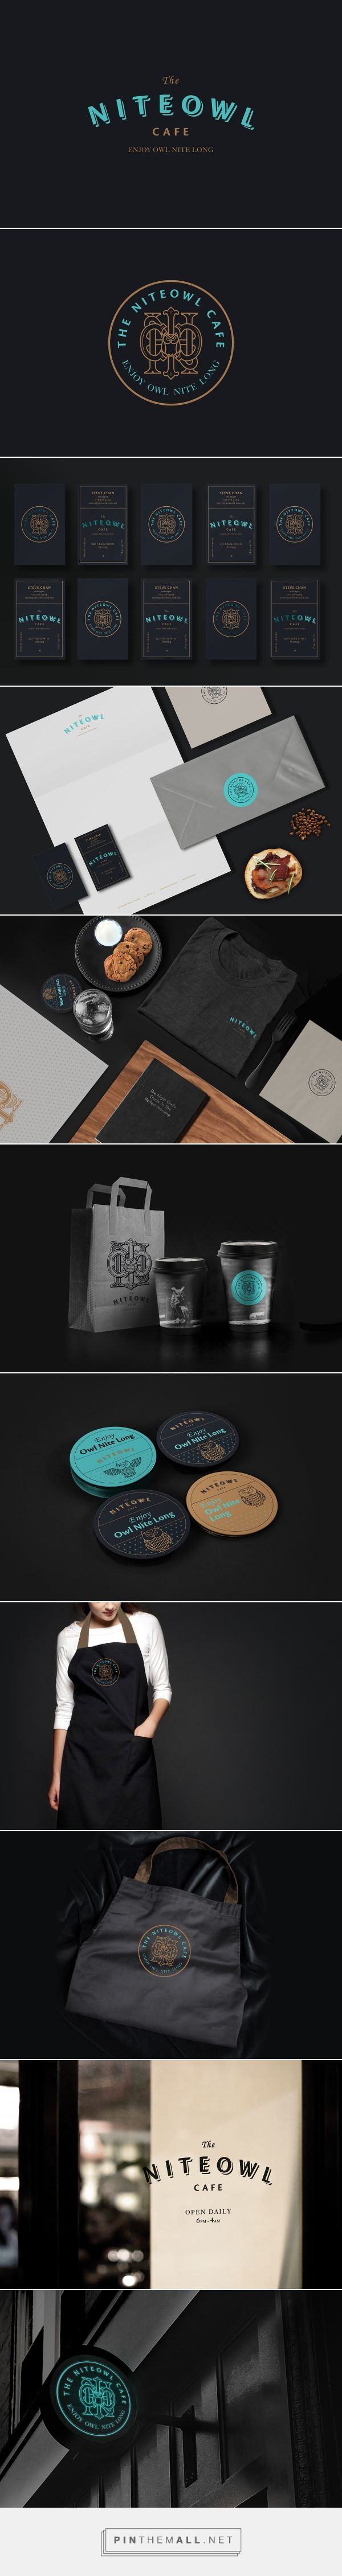 the niteowl cafe restaurant branding by ziyu ooi restaurant